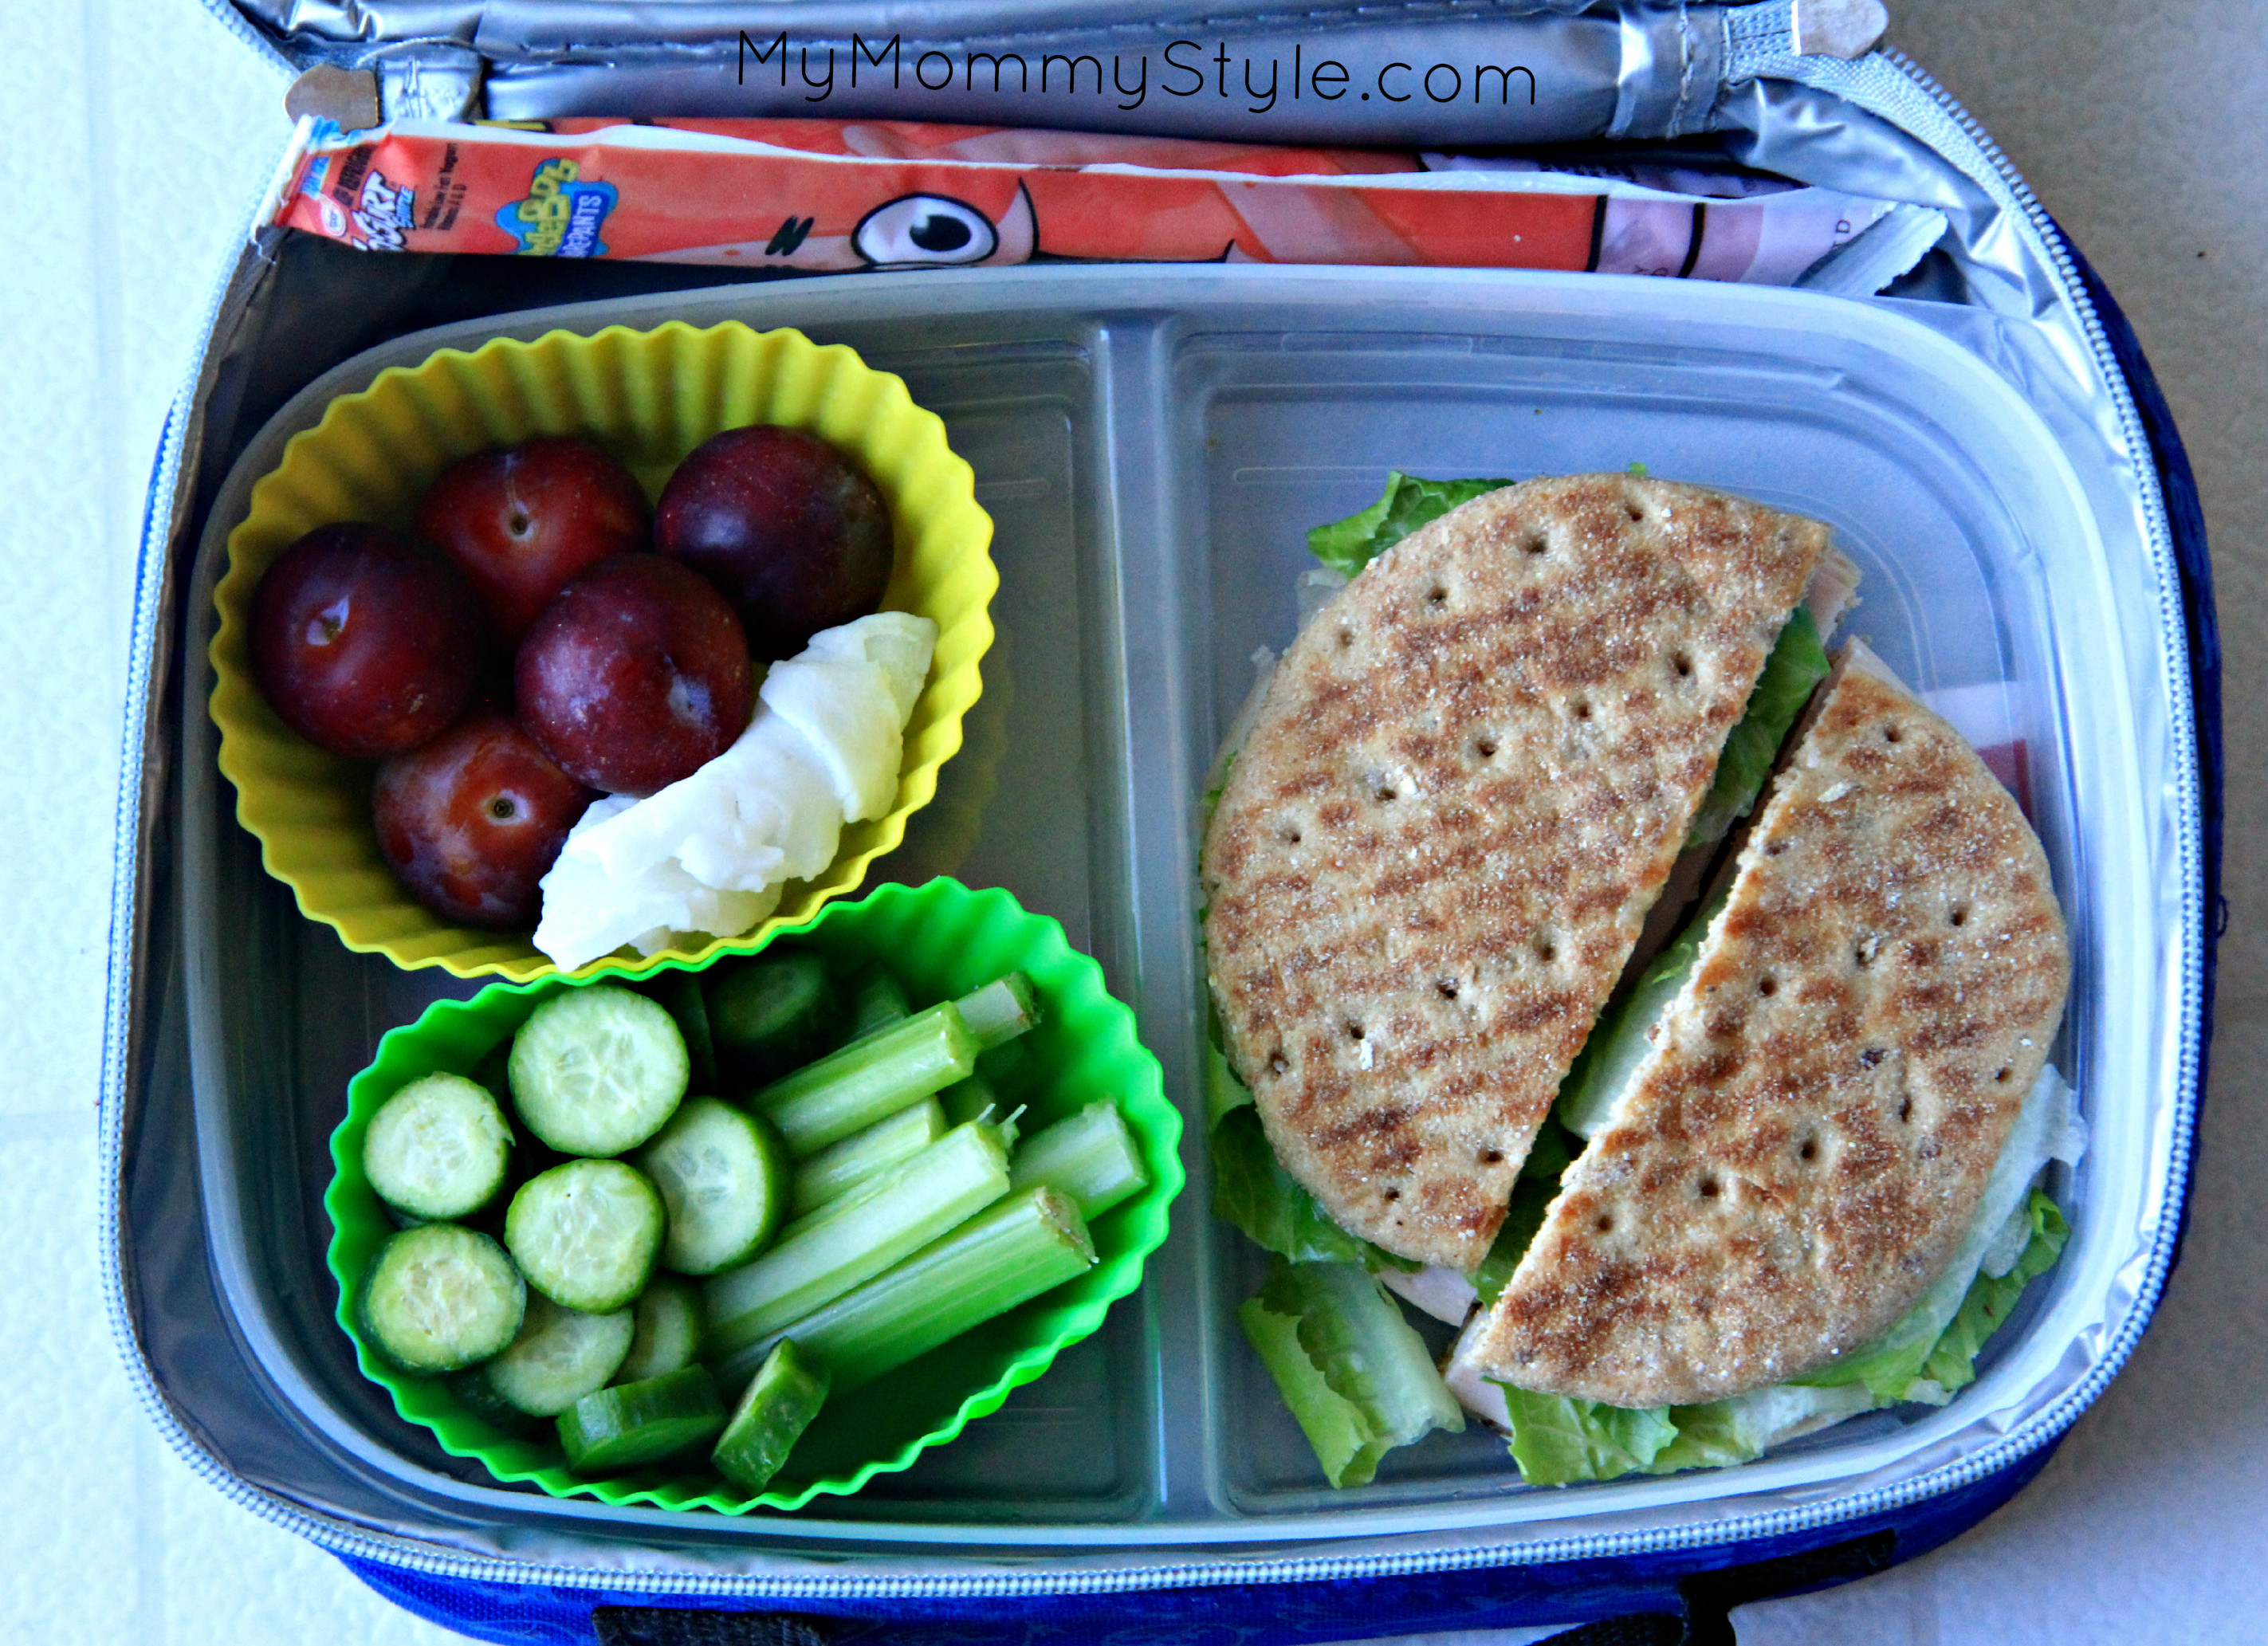 Healthy Packed Lunches For School  Healthy Lunch Box Lunches CCE Suffolk County Family